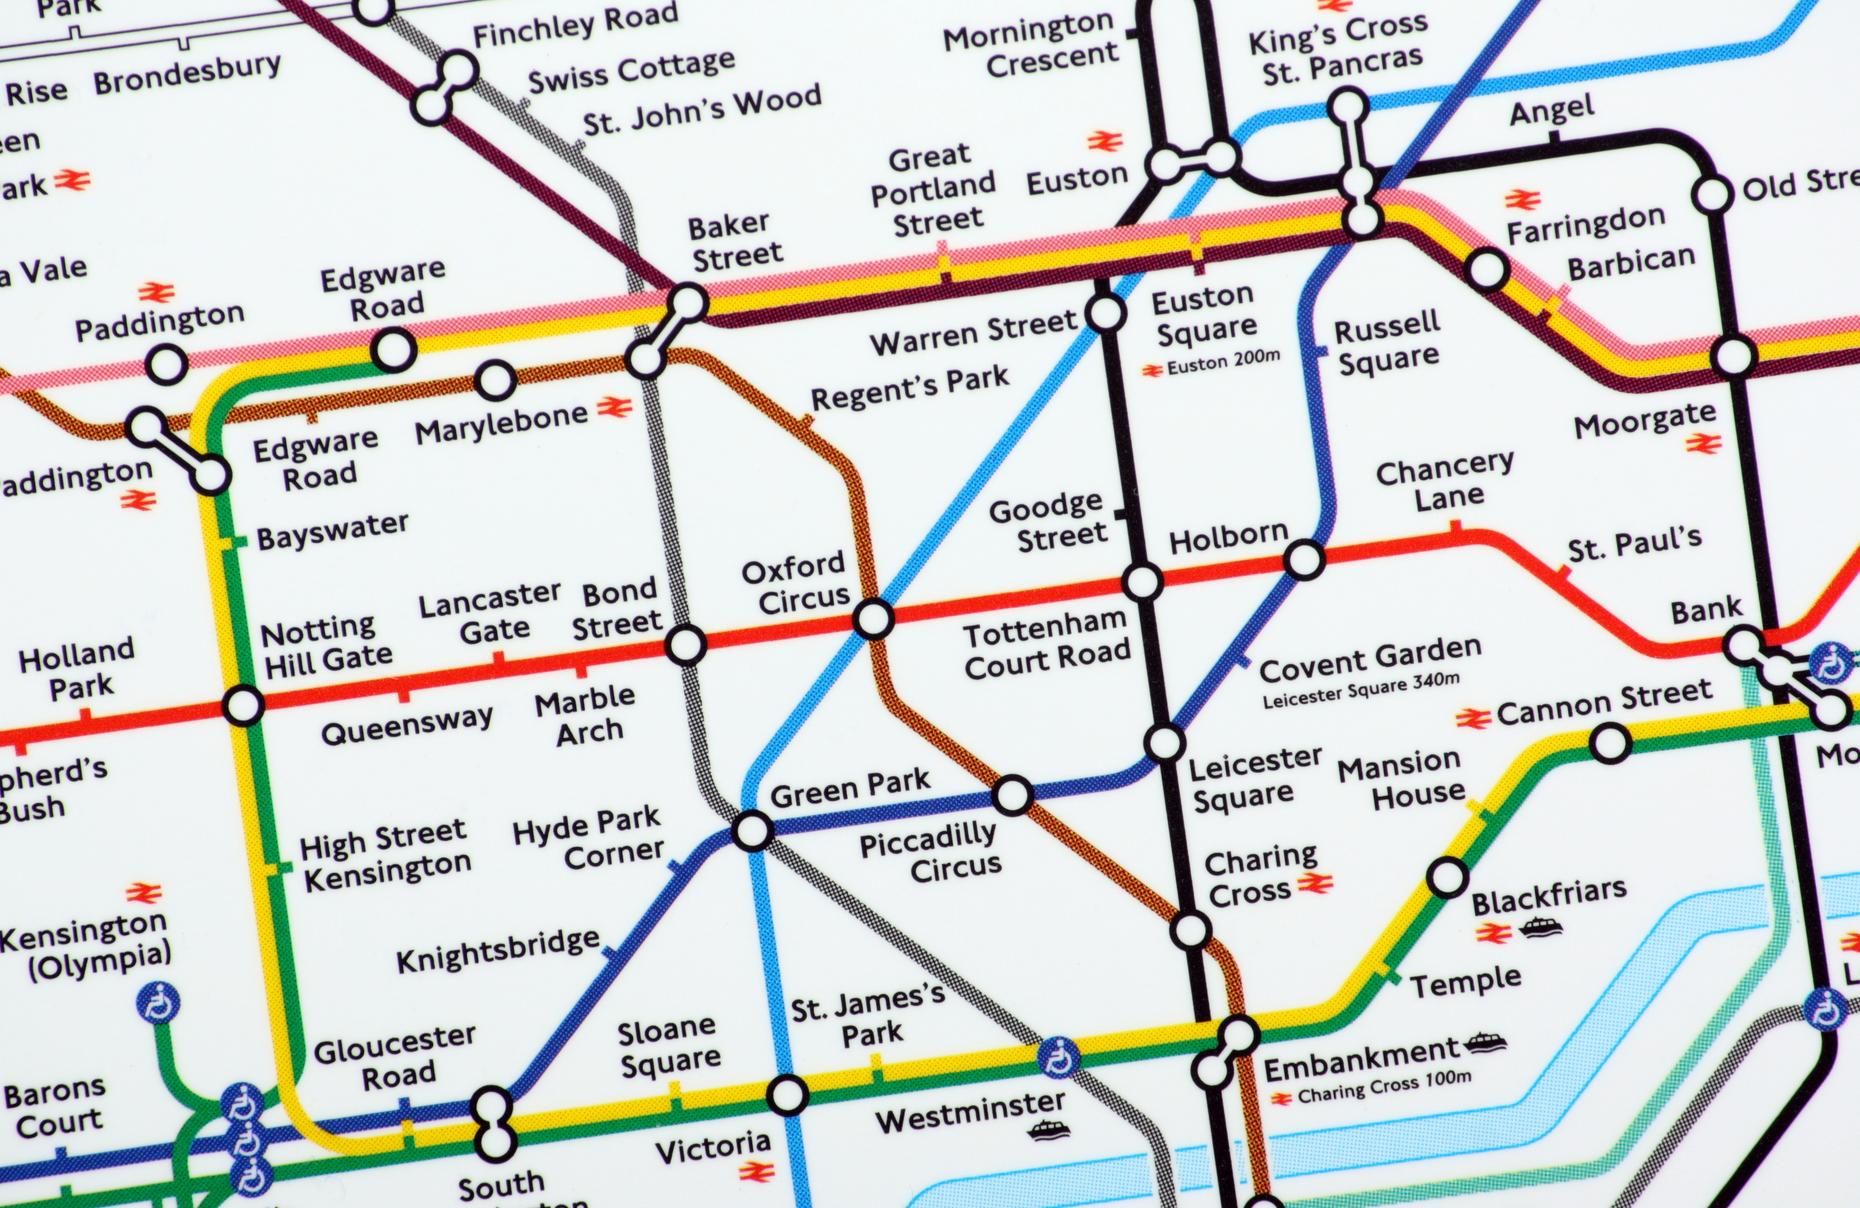 Street Map Of London With Tube Stations.London S 12 Most Musical Tube Stations Soundcheck New Sounds